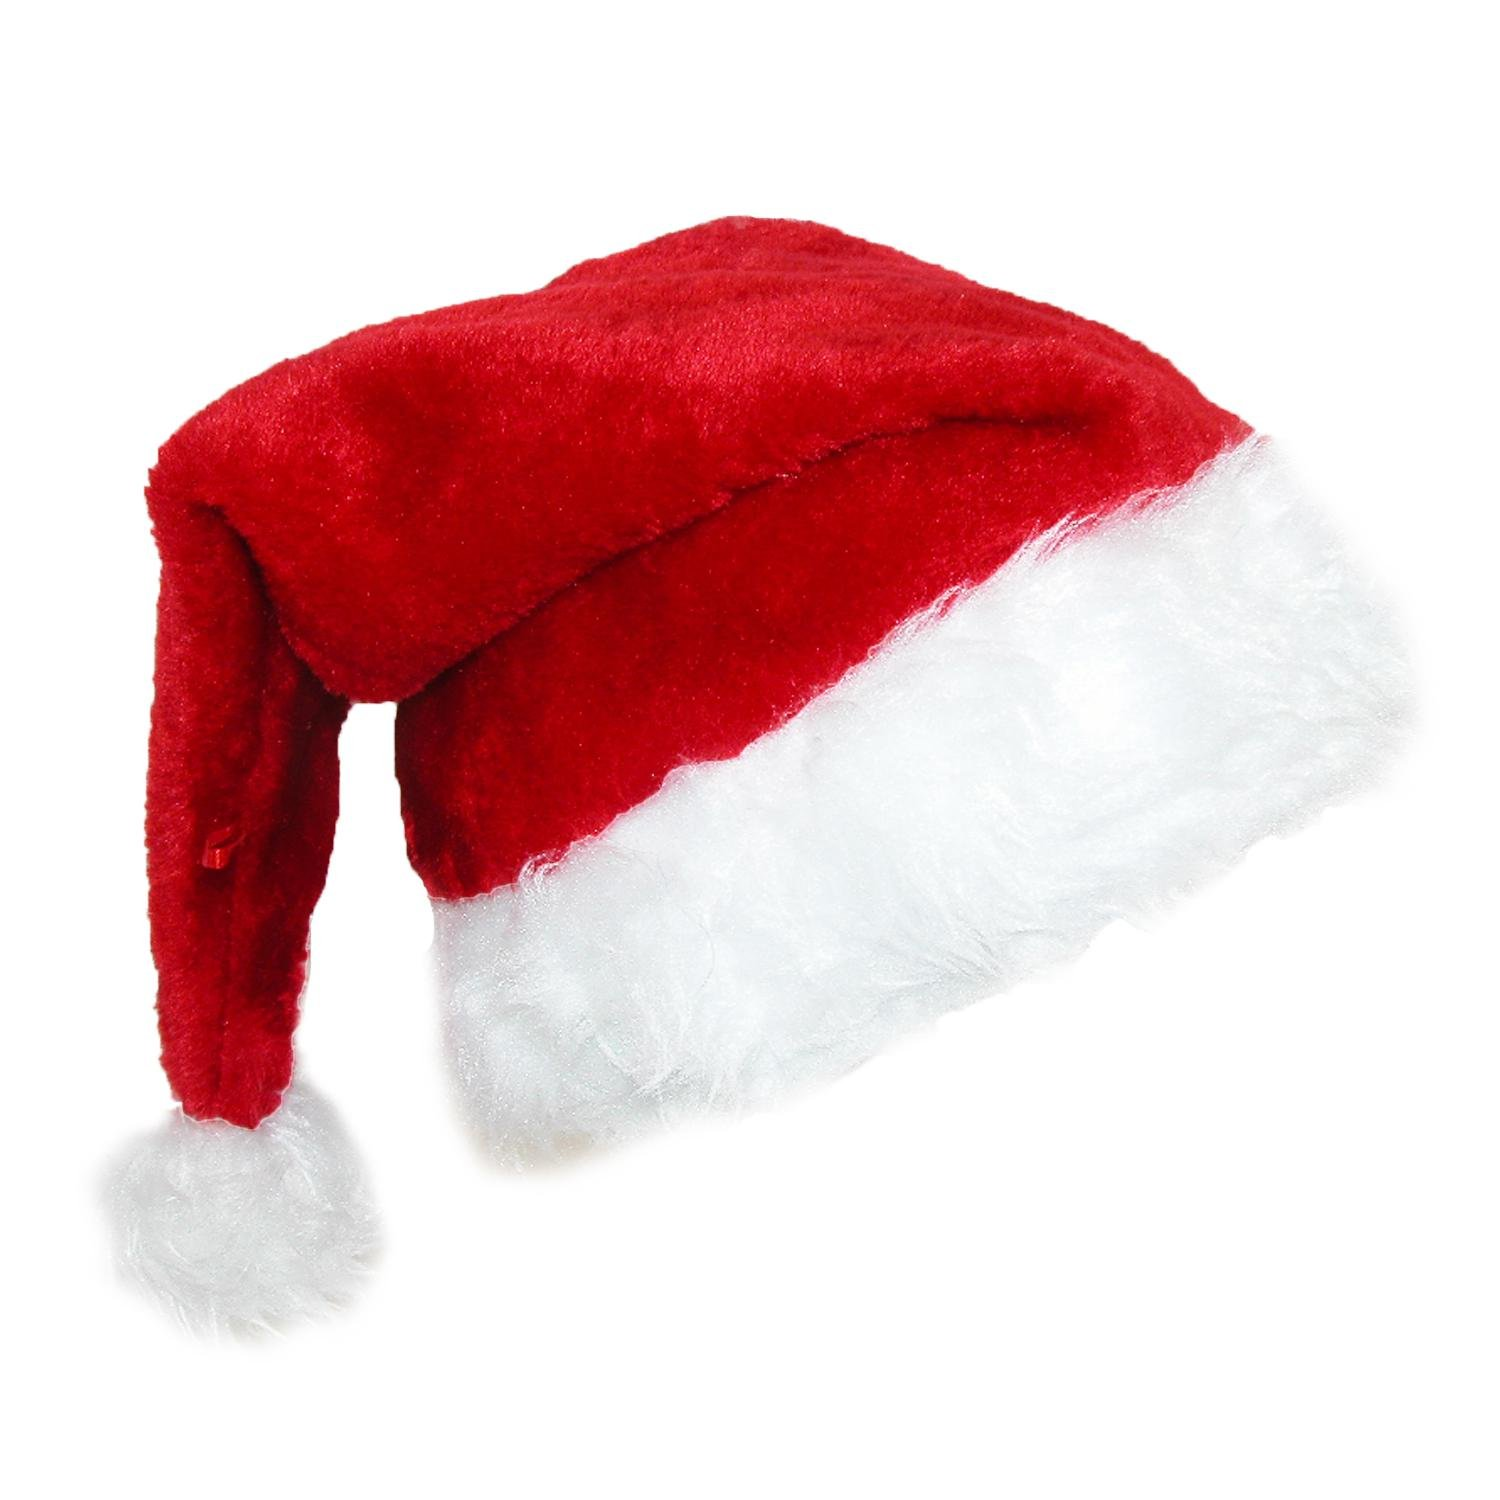 CTM Deluxe Plush Trim Santa Novelty Holiday Hat (Pack of 2) Red JH-20407KIT-RED